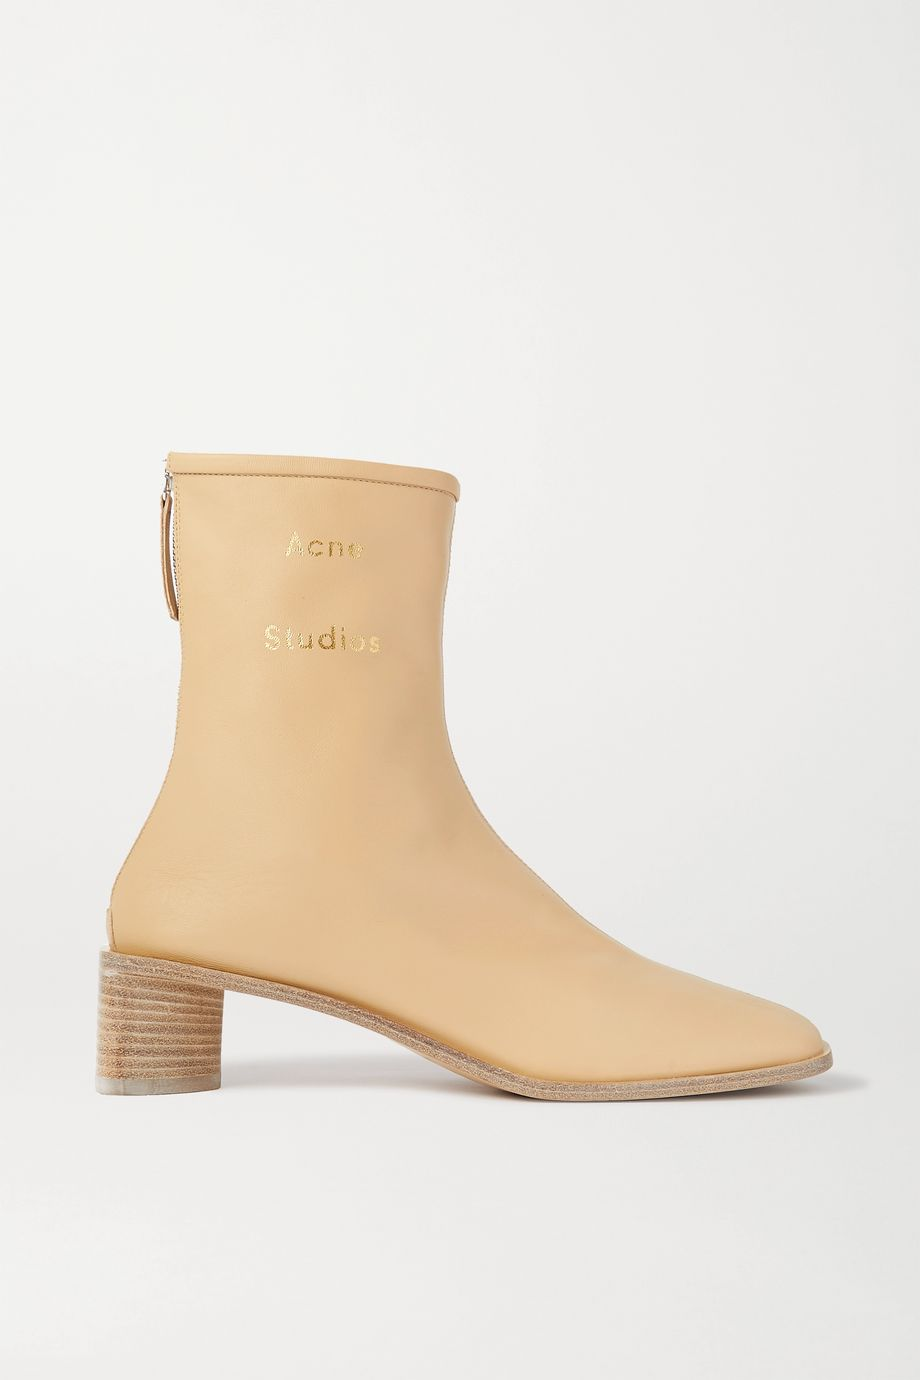 Acne Studios Logo-print leather ankle boots